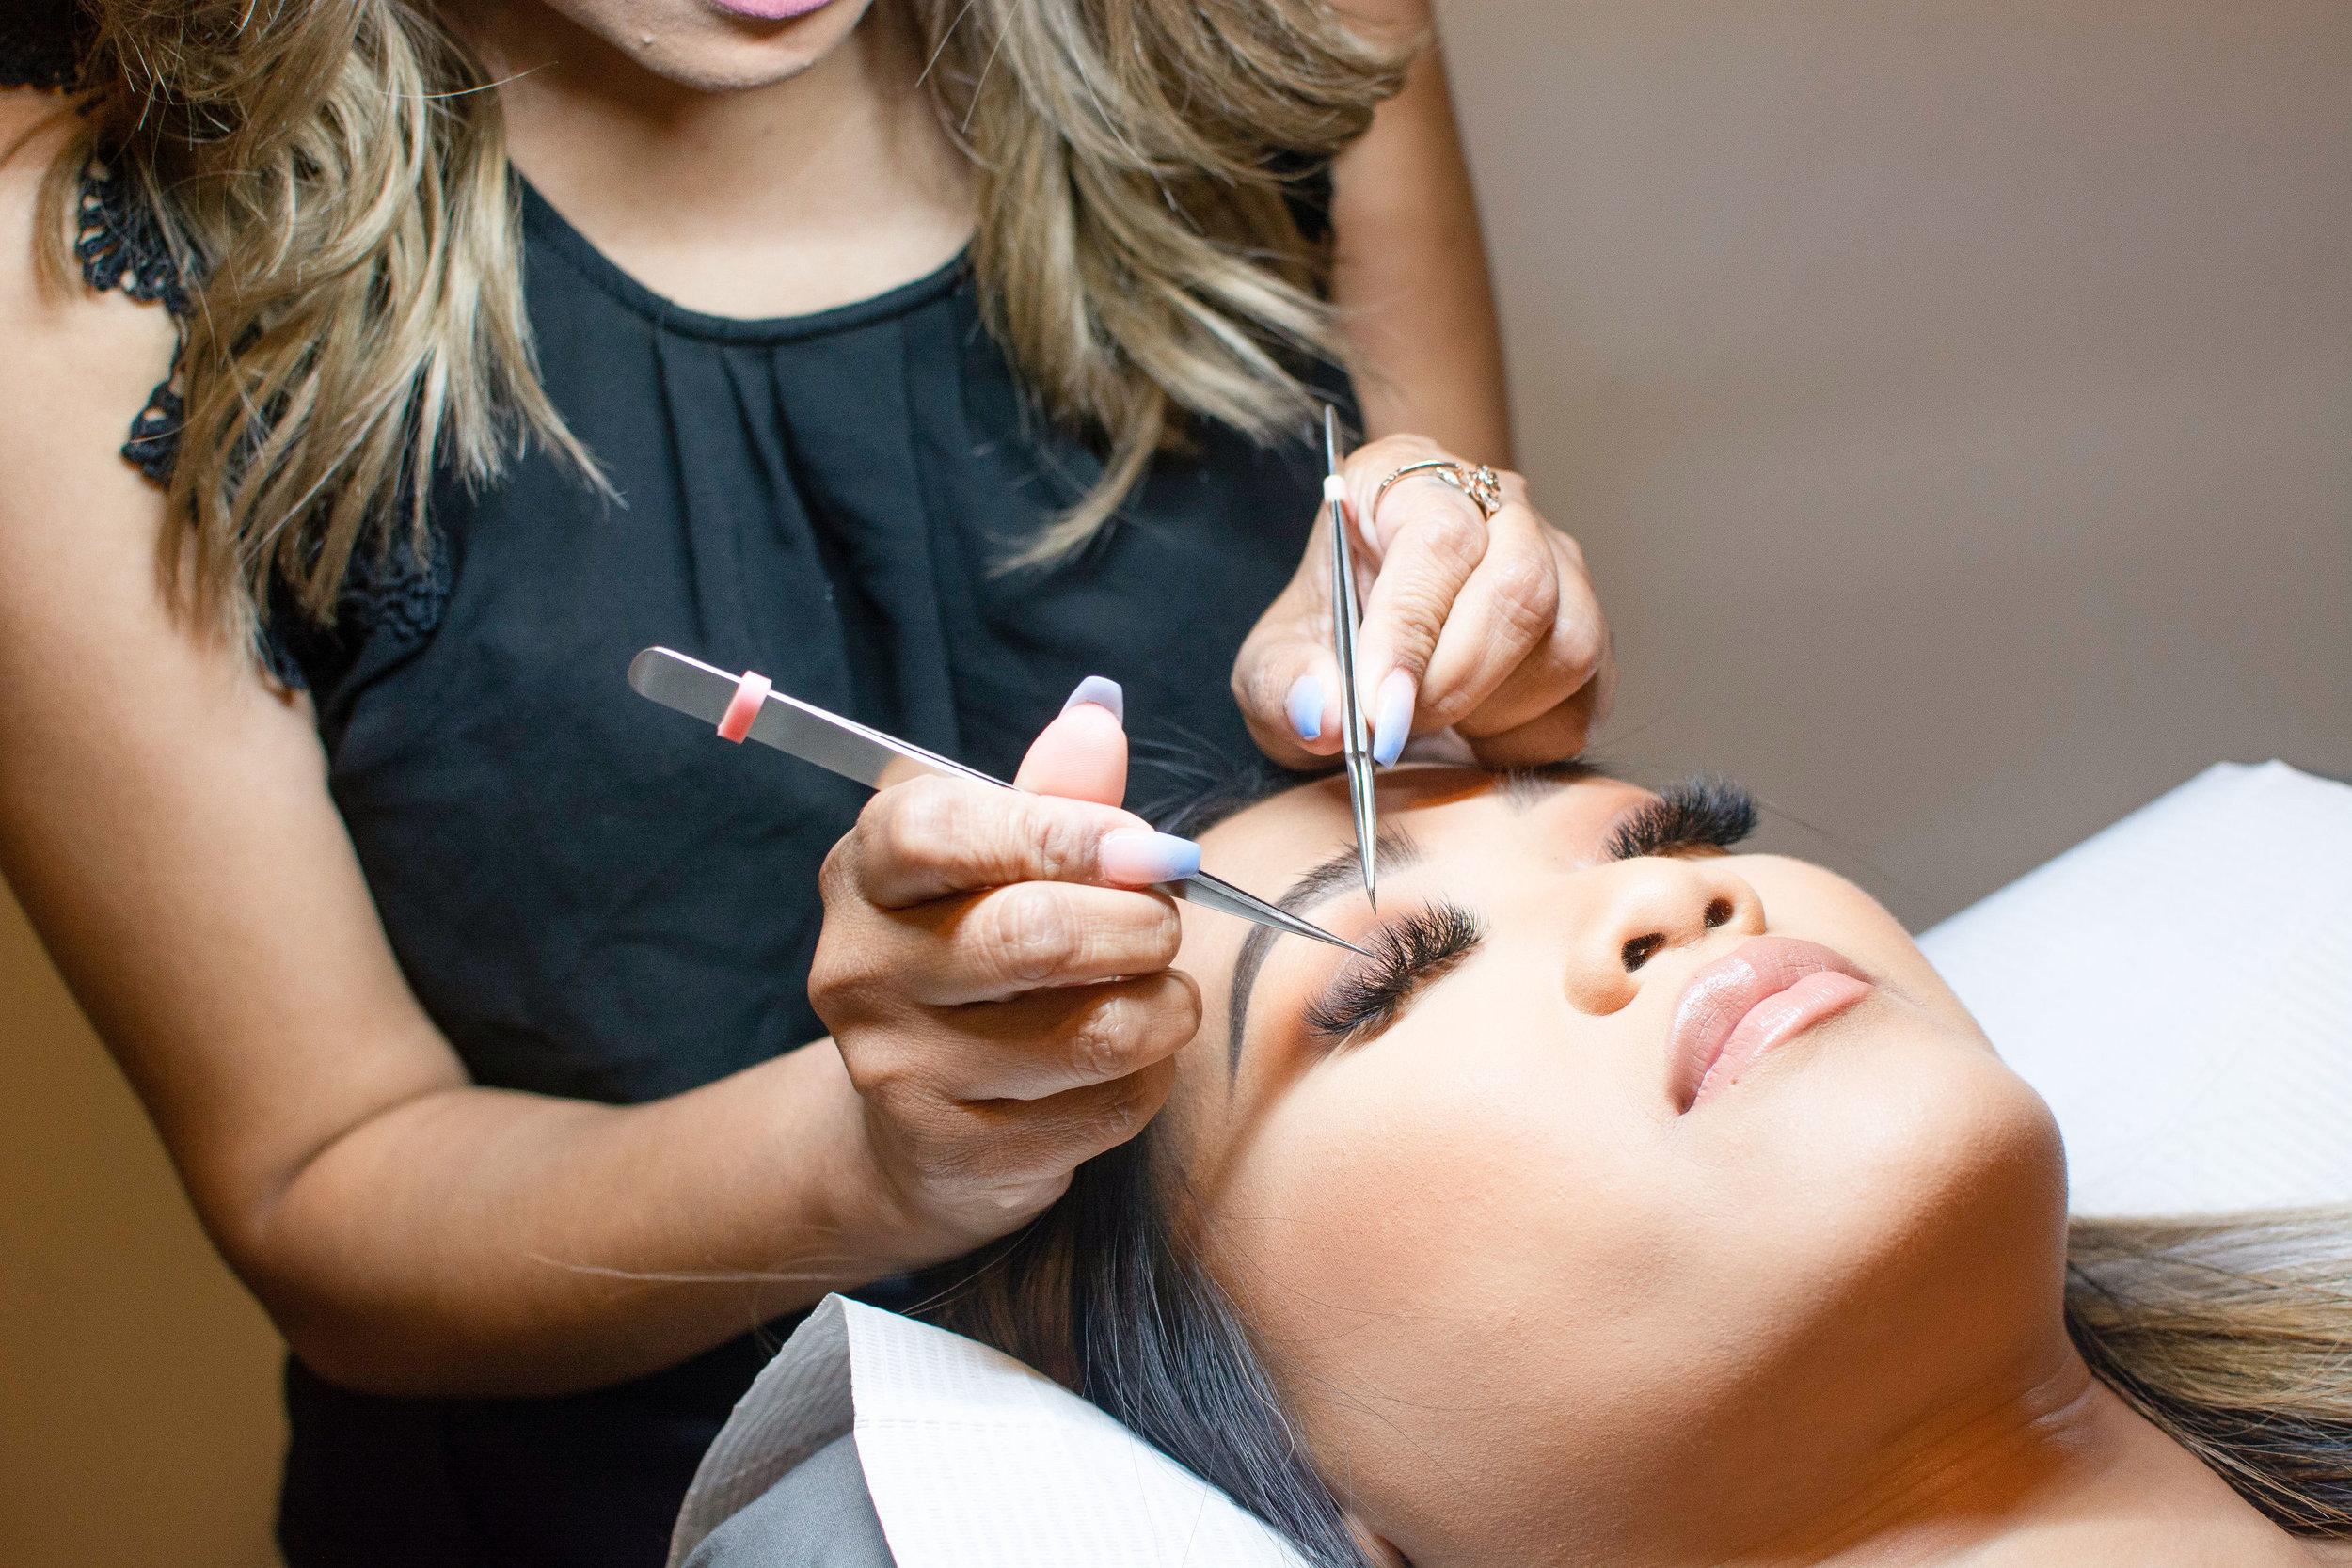 - We are an exclusive eyelash extension studio located in the heart of San Jose (Willow Glen). With the rapid growth in extension popularity, we are looking for new members to add to our LASH FAM! : )Please read the following requirements and make sure they ALL apply to you before sending in your resume. Details about our studio will be provided after your resume is received.